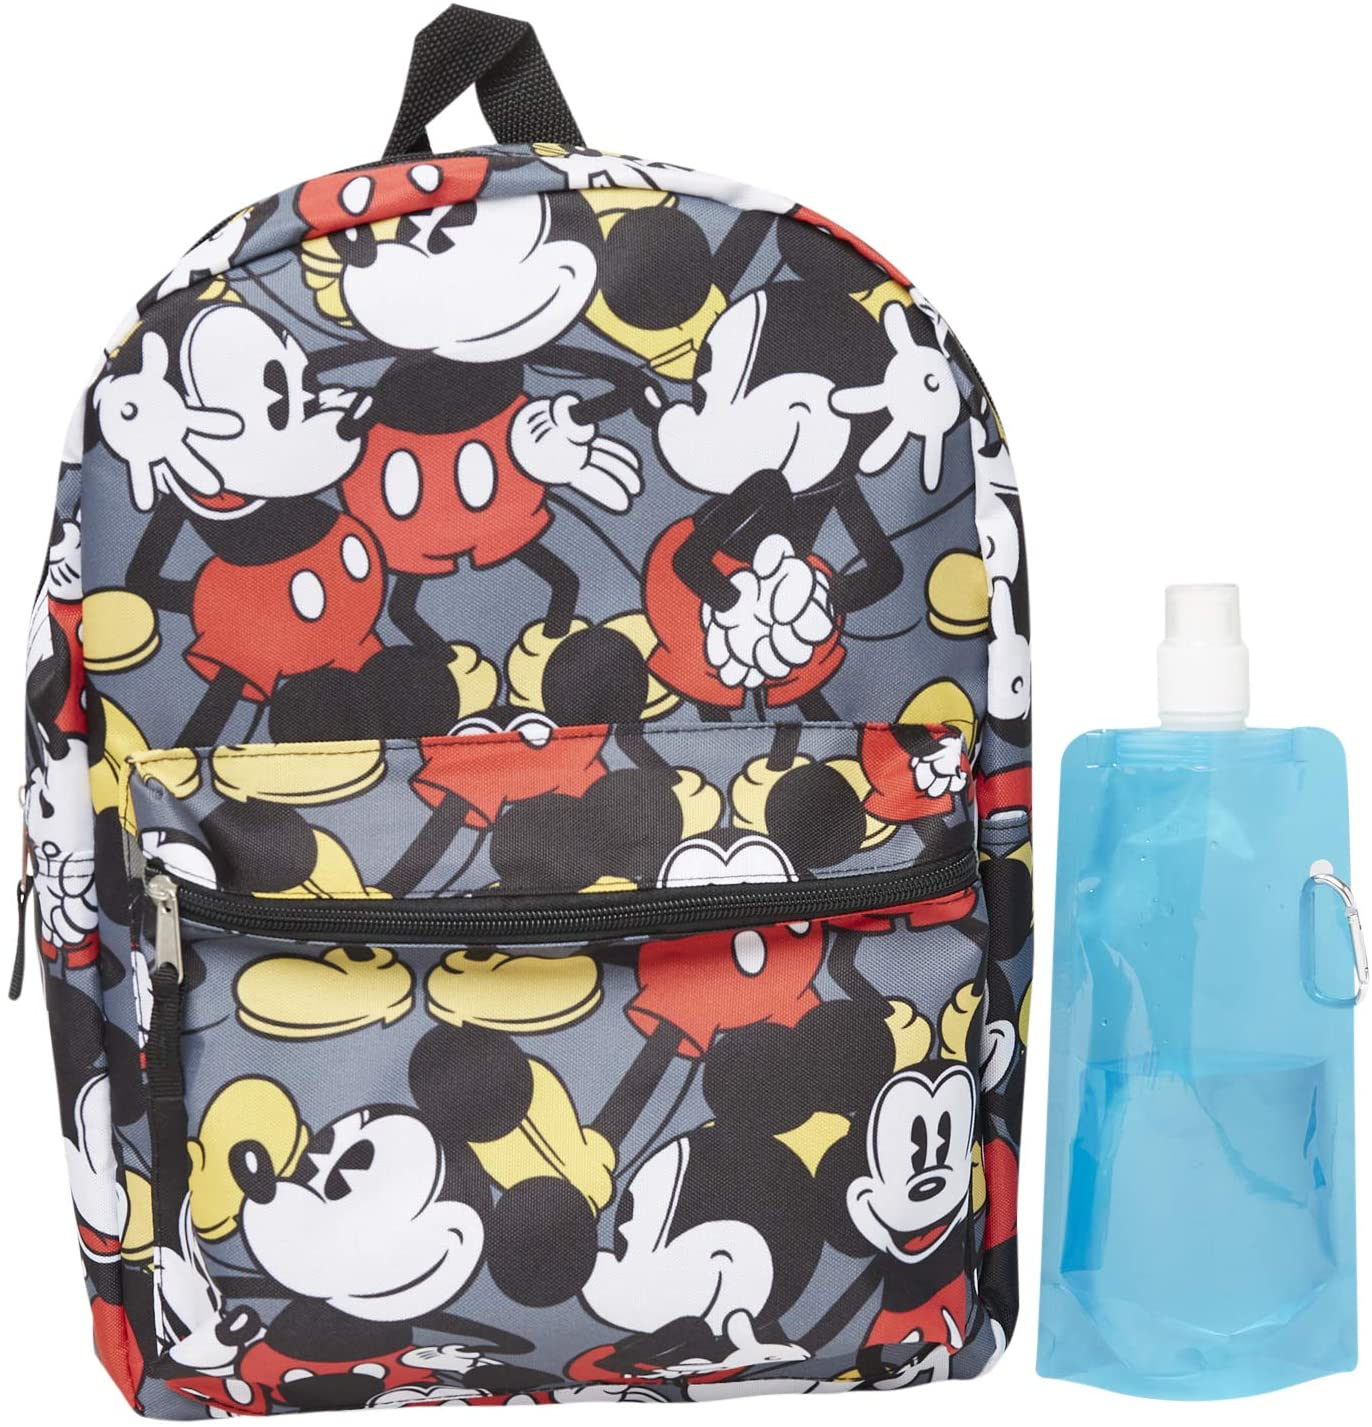 Mickey Mouse Backpack Combo Set - Mickey Mouse Boys 3 Piece Backpack Set - Backpack, Water Bottle and Carabina (Allover)